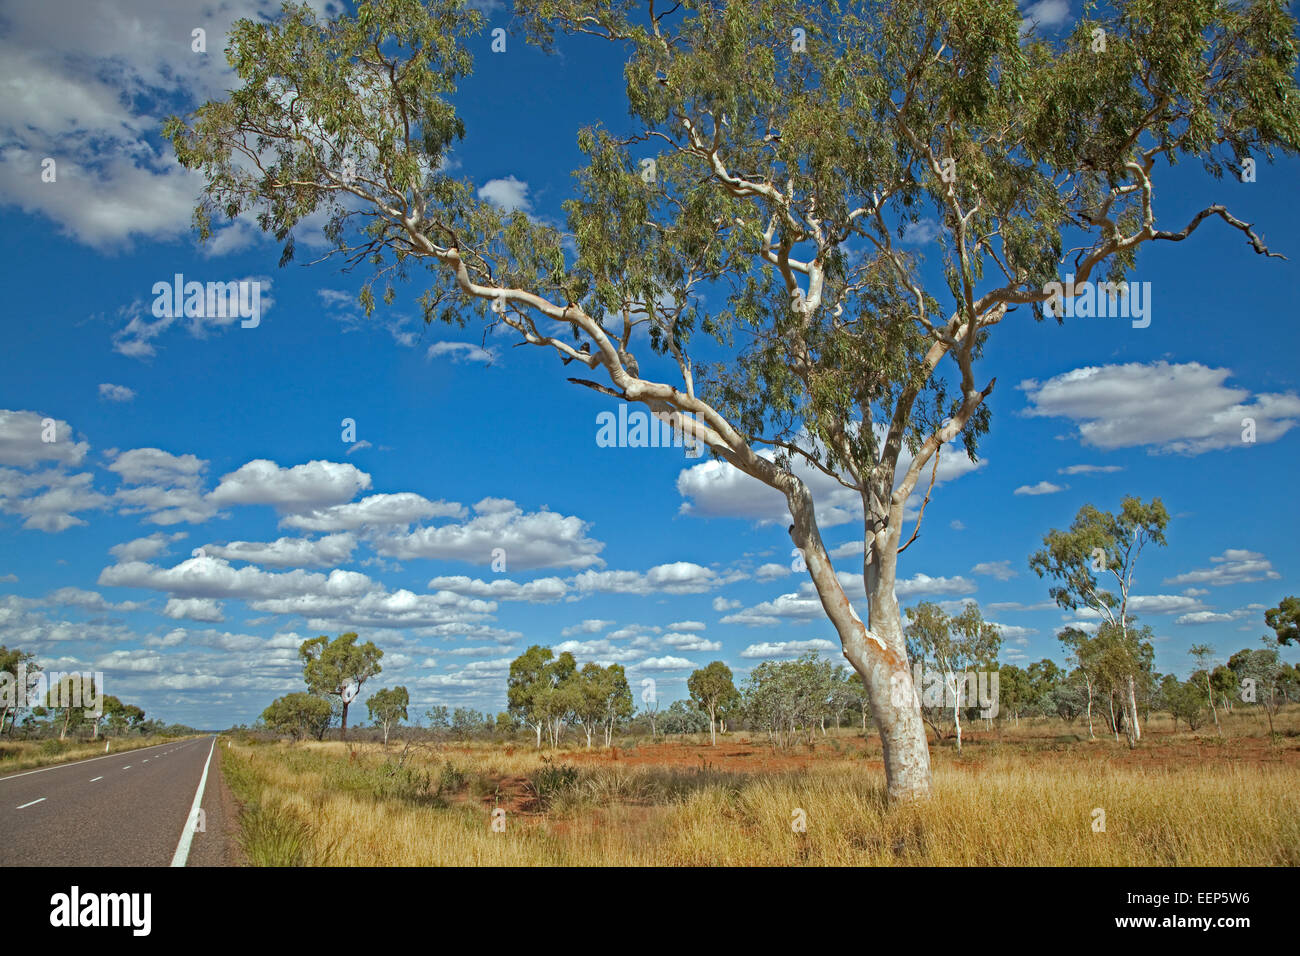 Eucalyptus tree / gum trees in the Australian outback along the Barkly Highway, Northern Territory, Australia - Stock Image